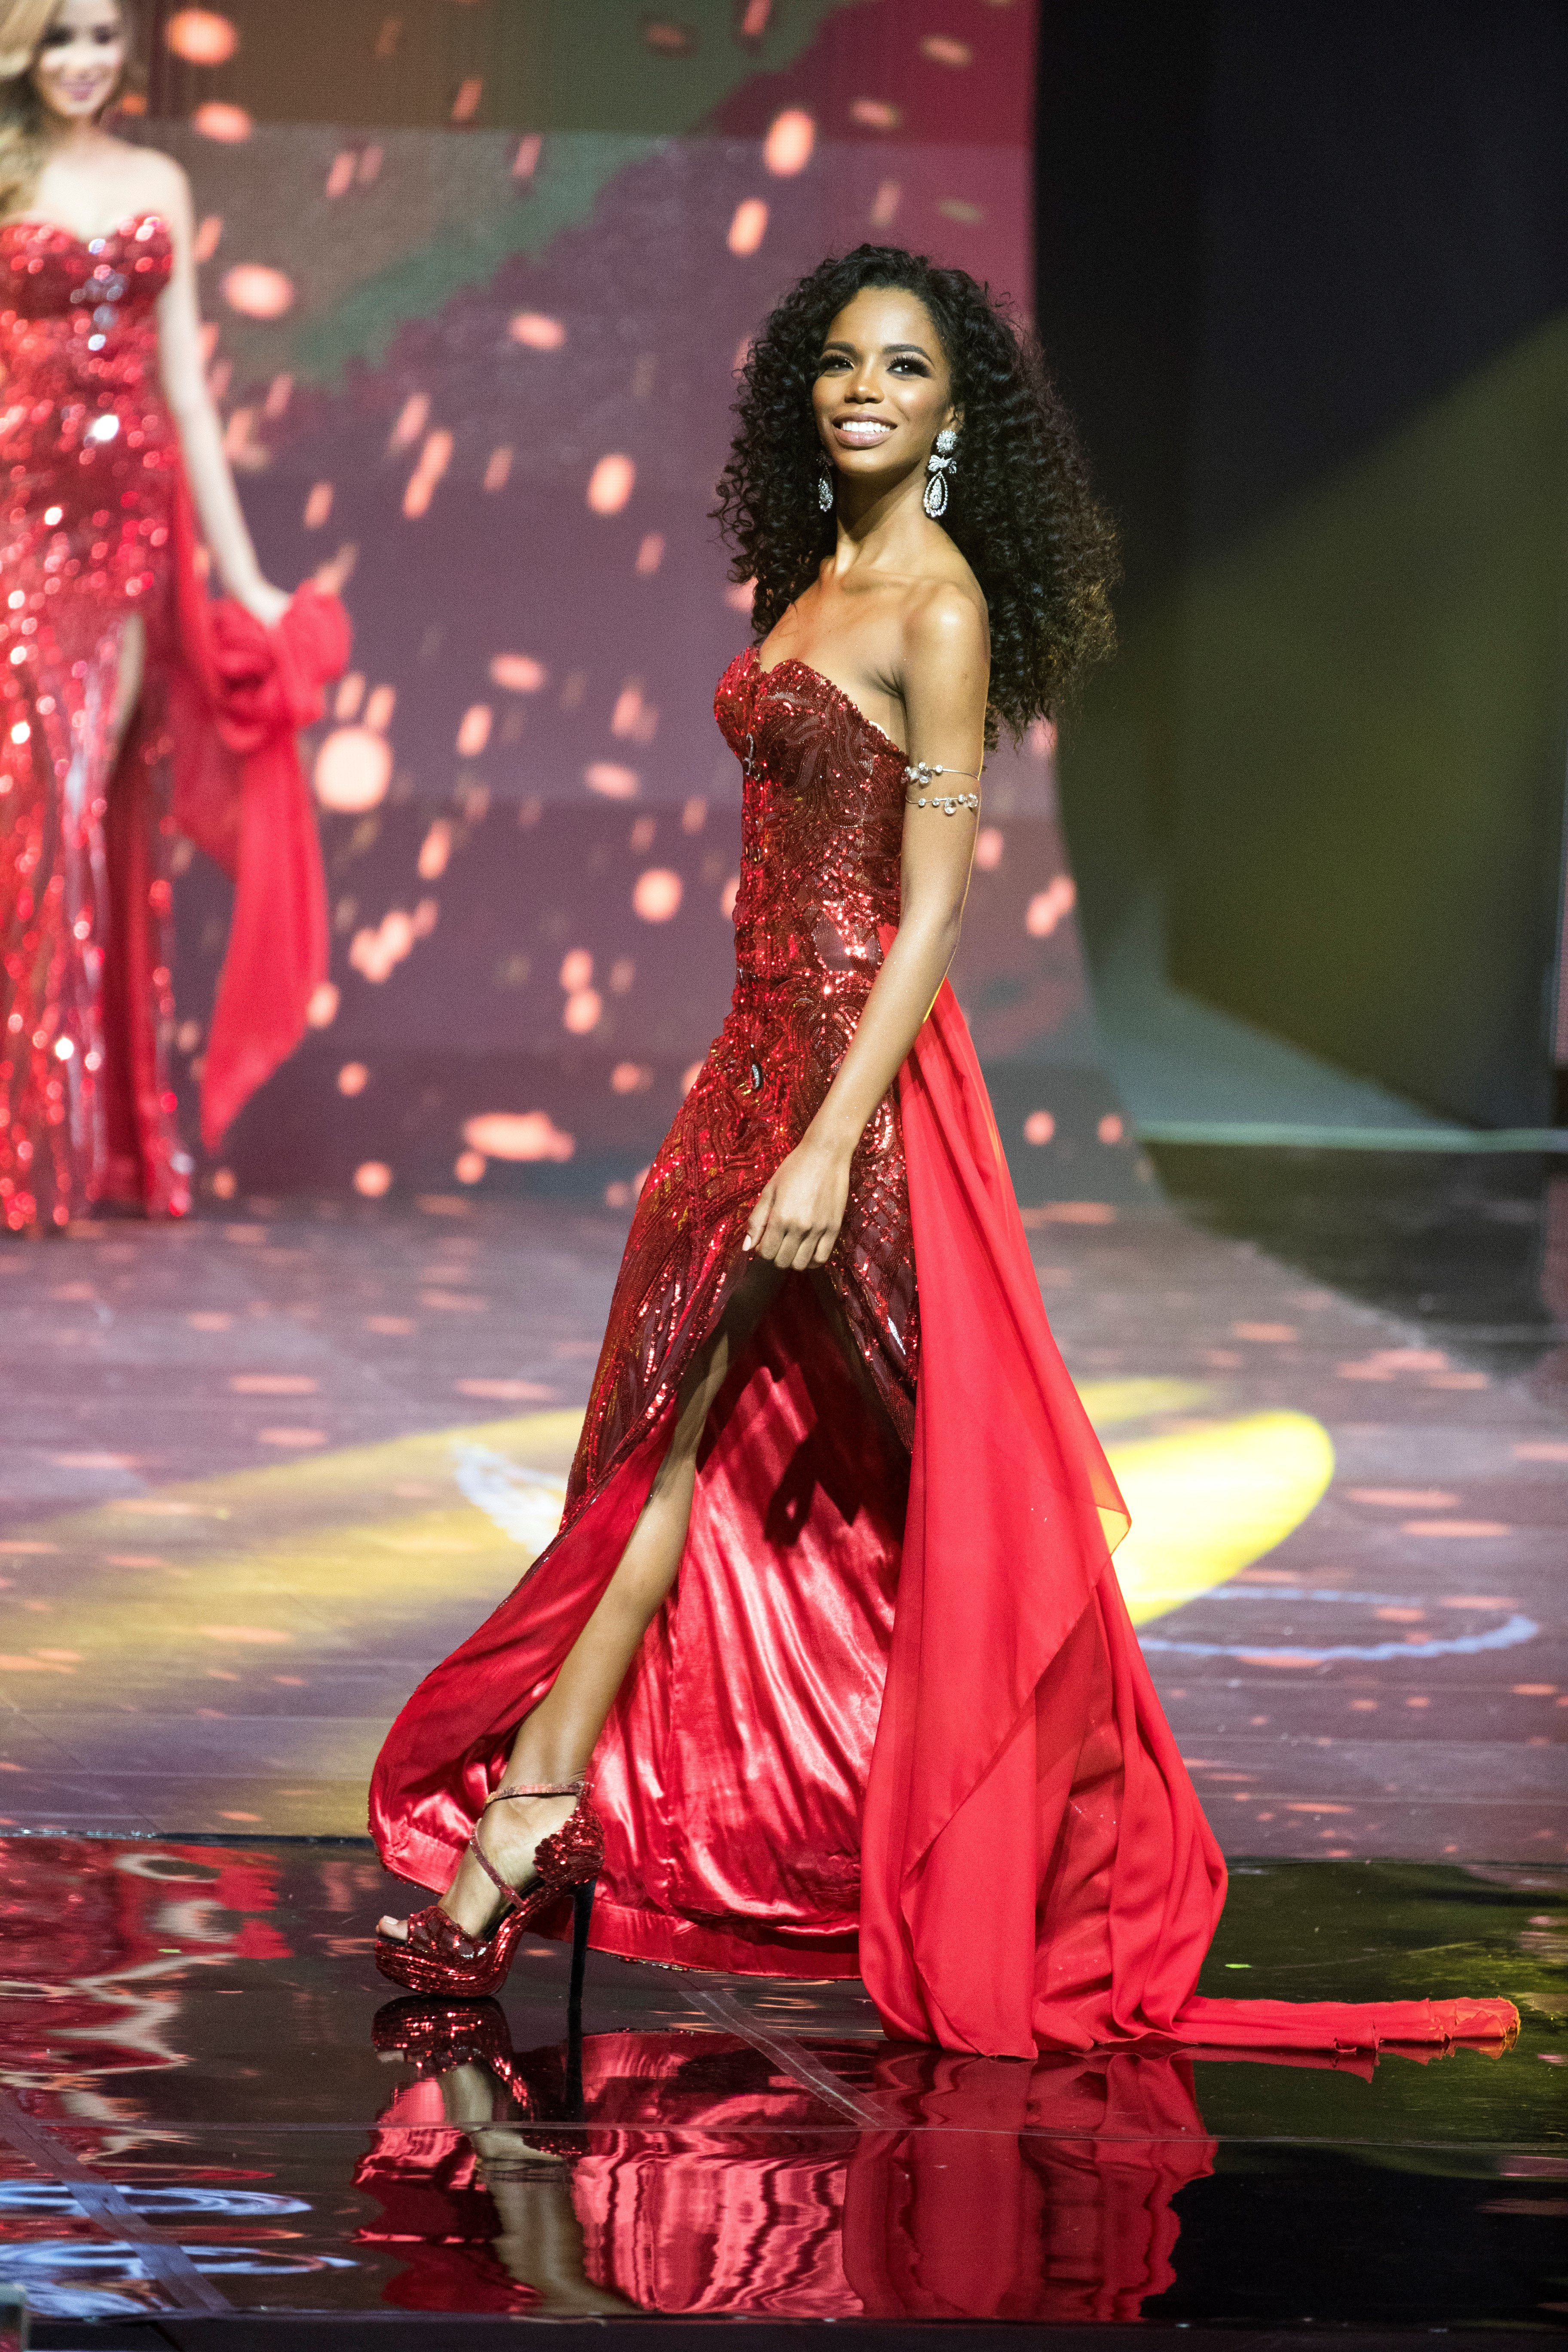 Miss Dominican Republic 2019 - Clauvid Daly